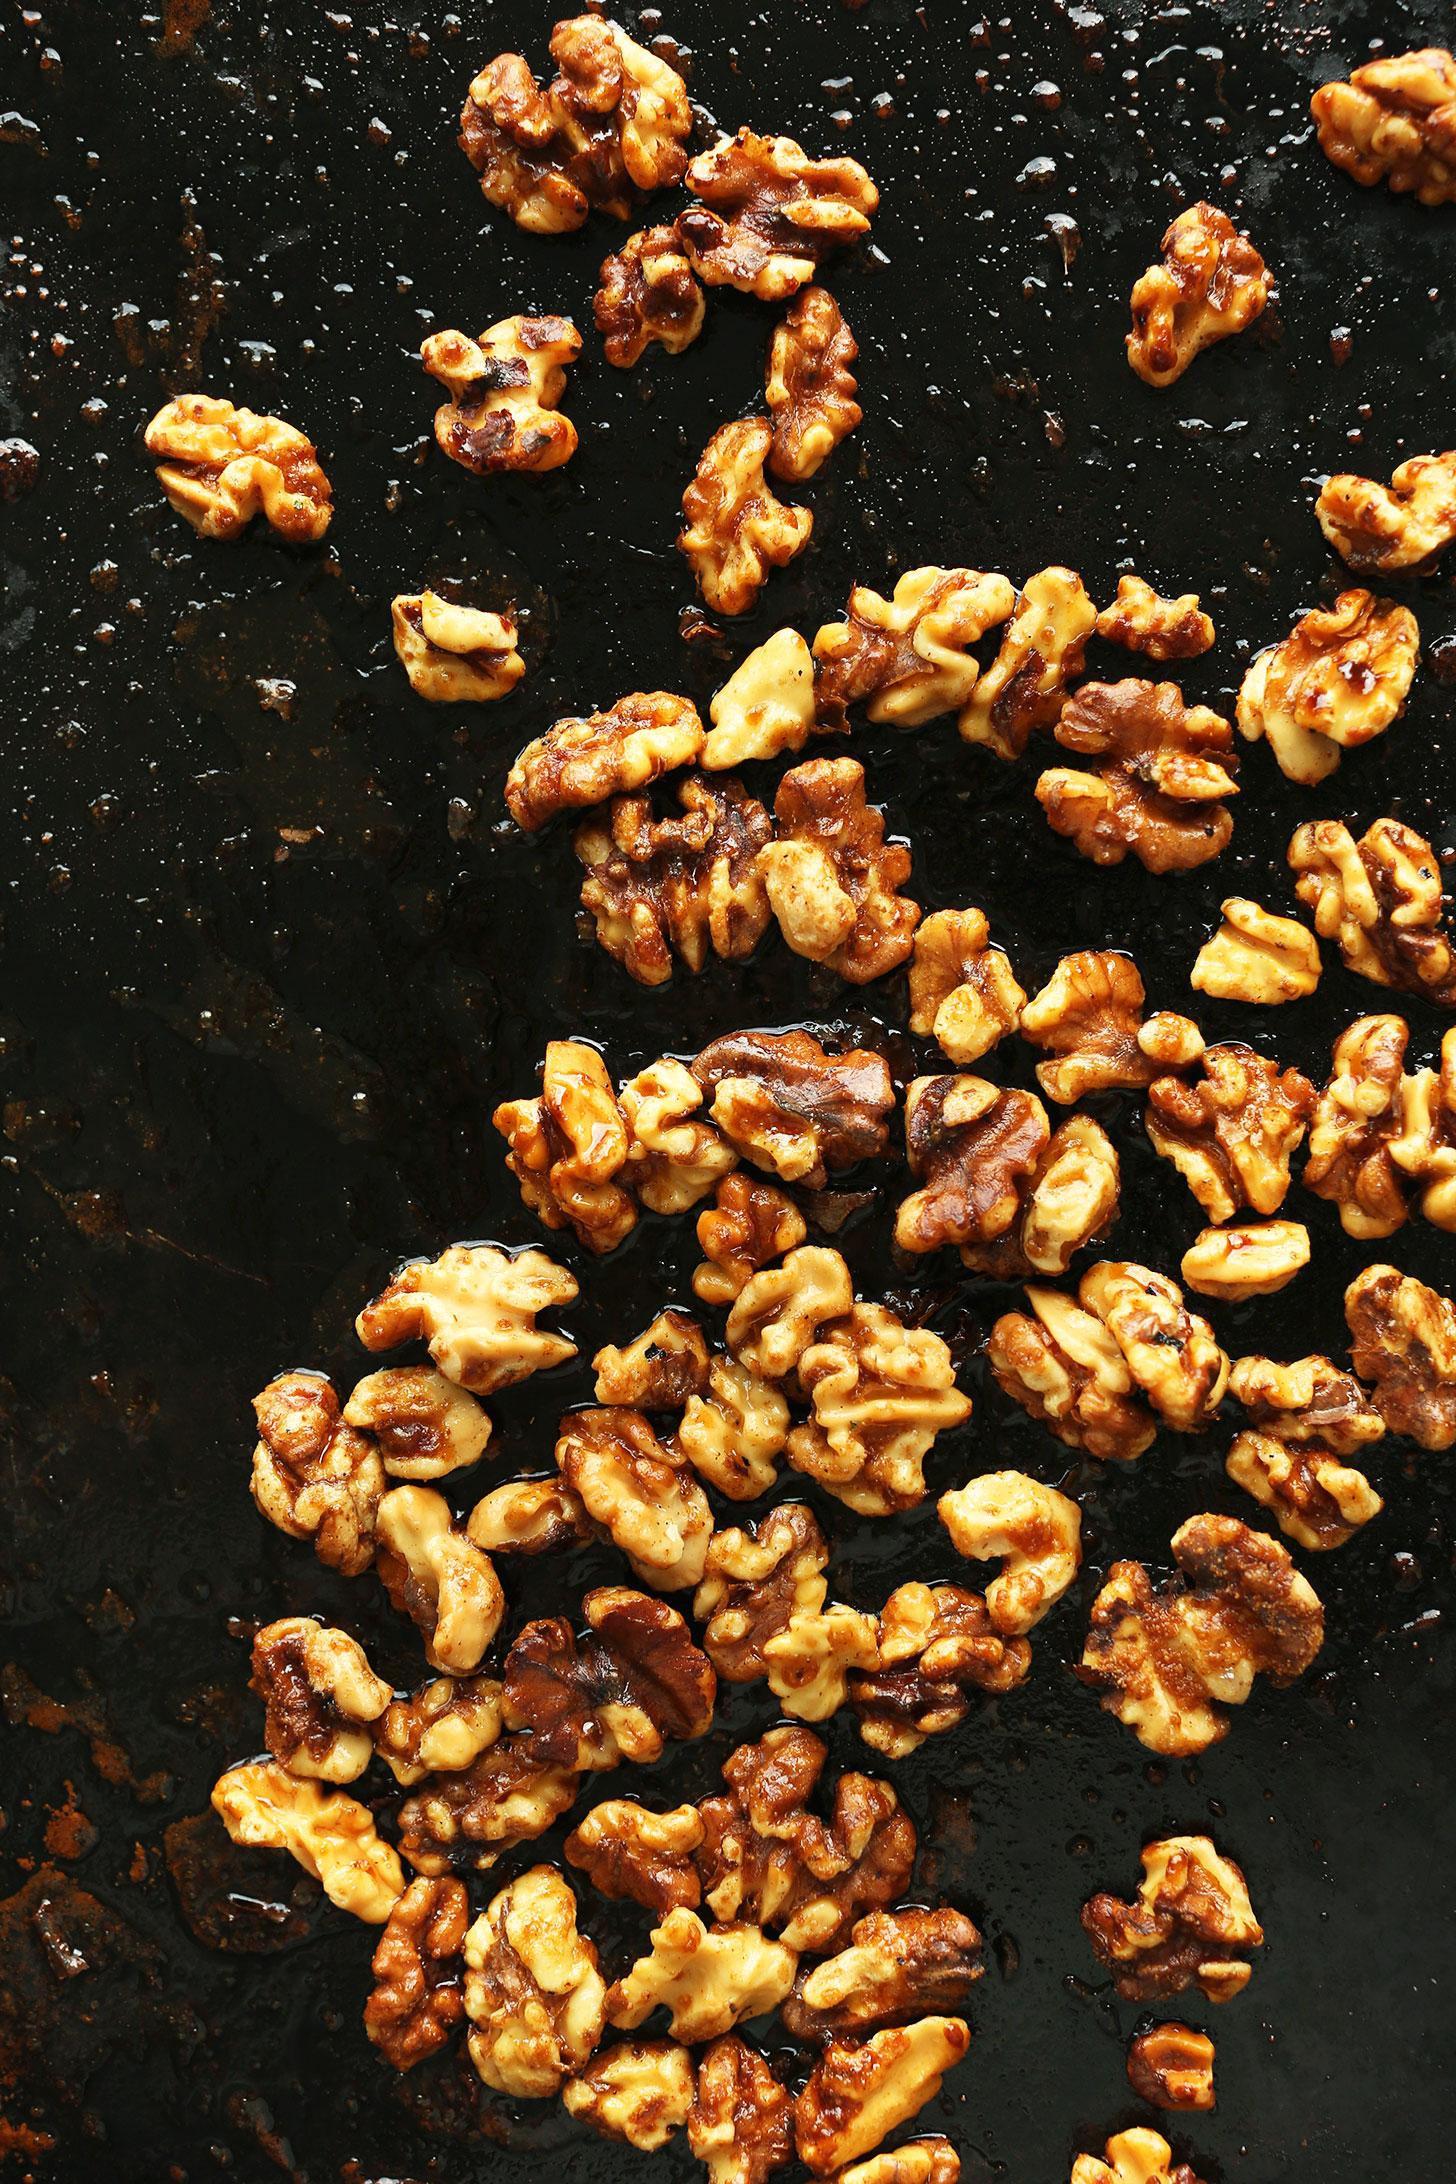 Baking sheet with Candied Walnuts for topping salad